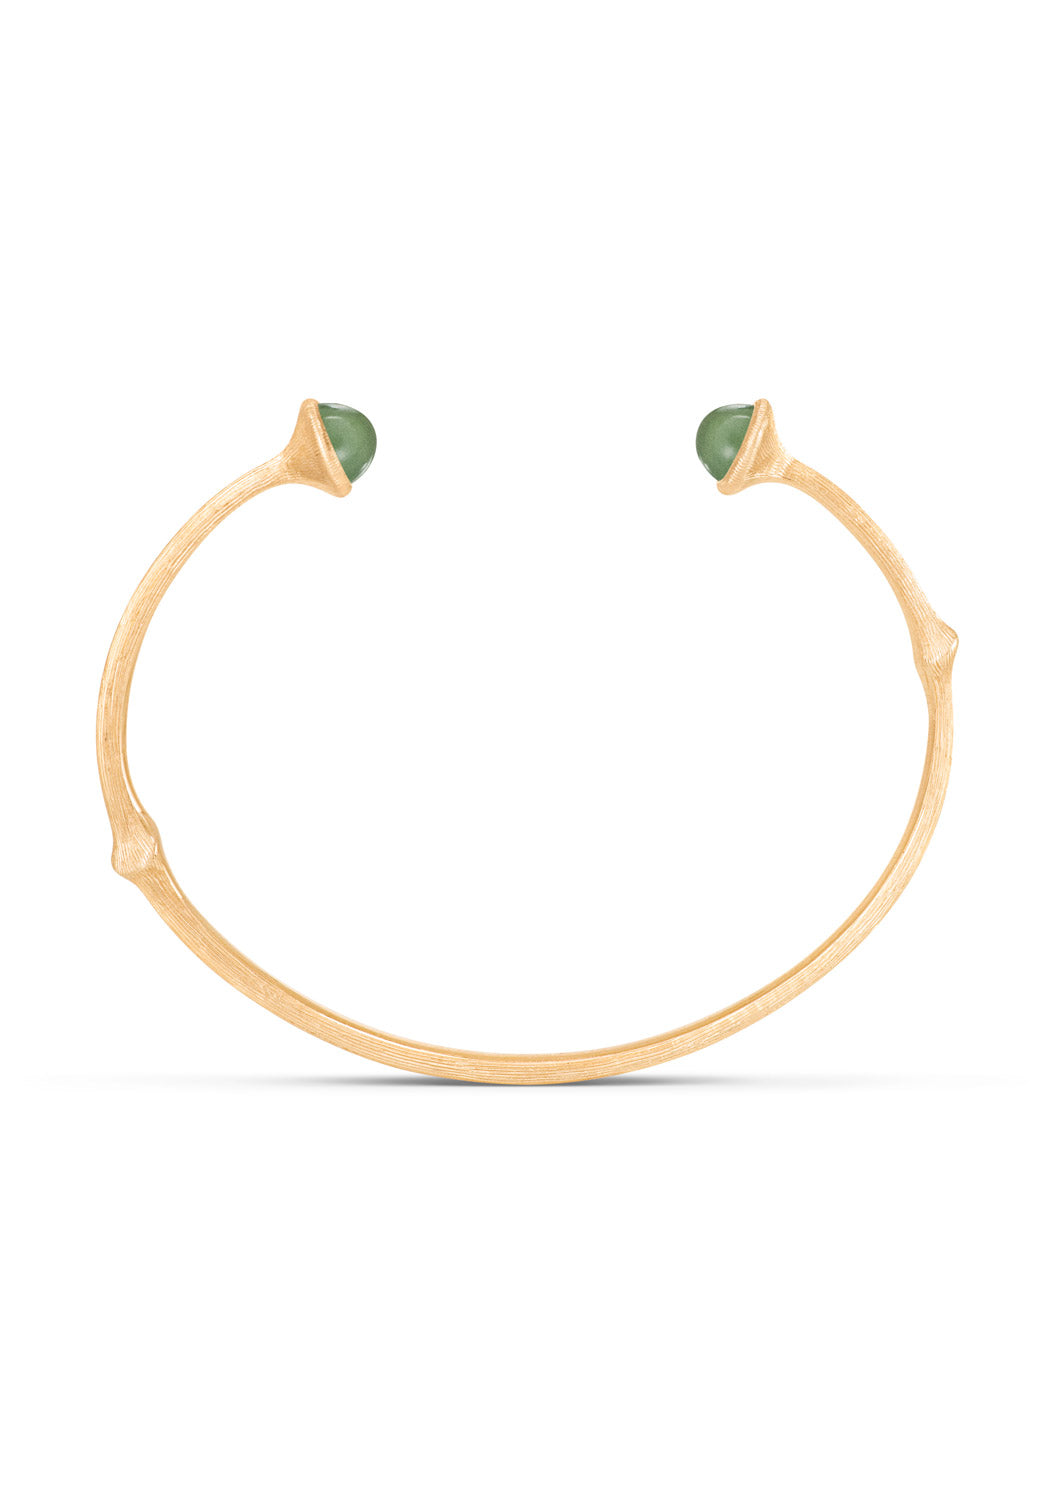 OLE LYNGGAARD Open Serpentine Nature Cuff